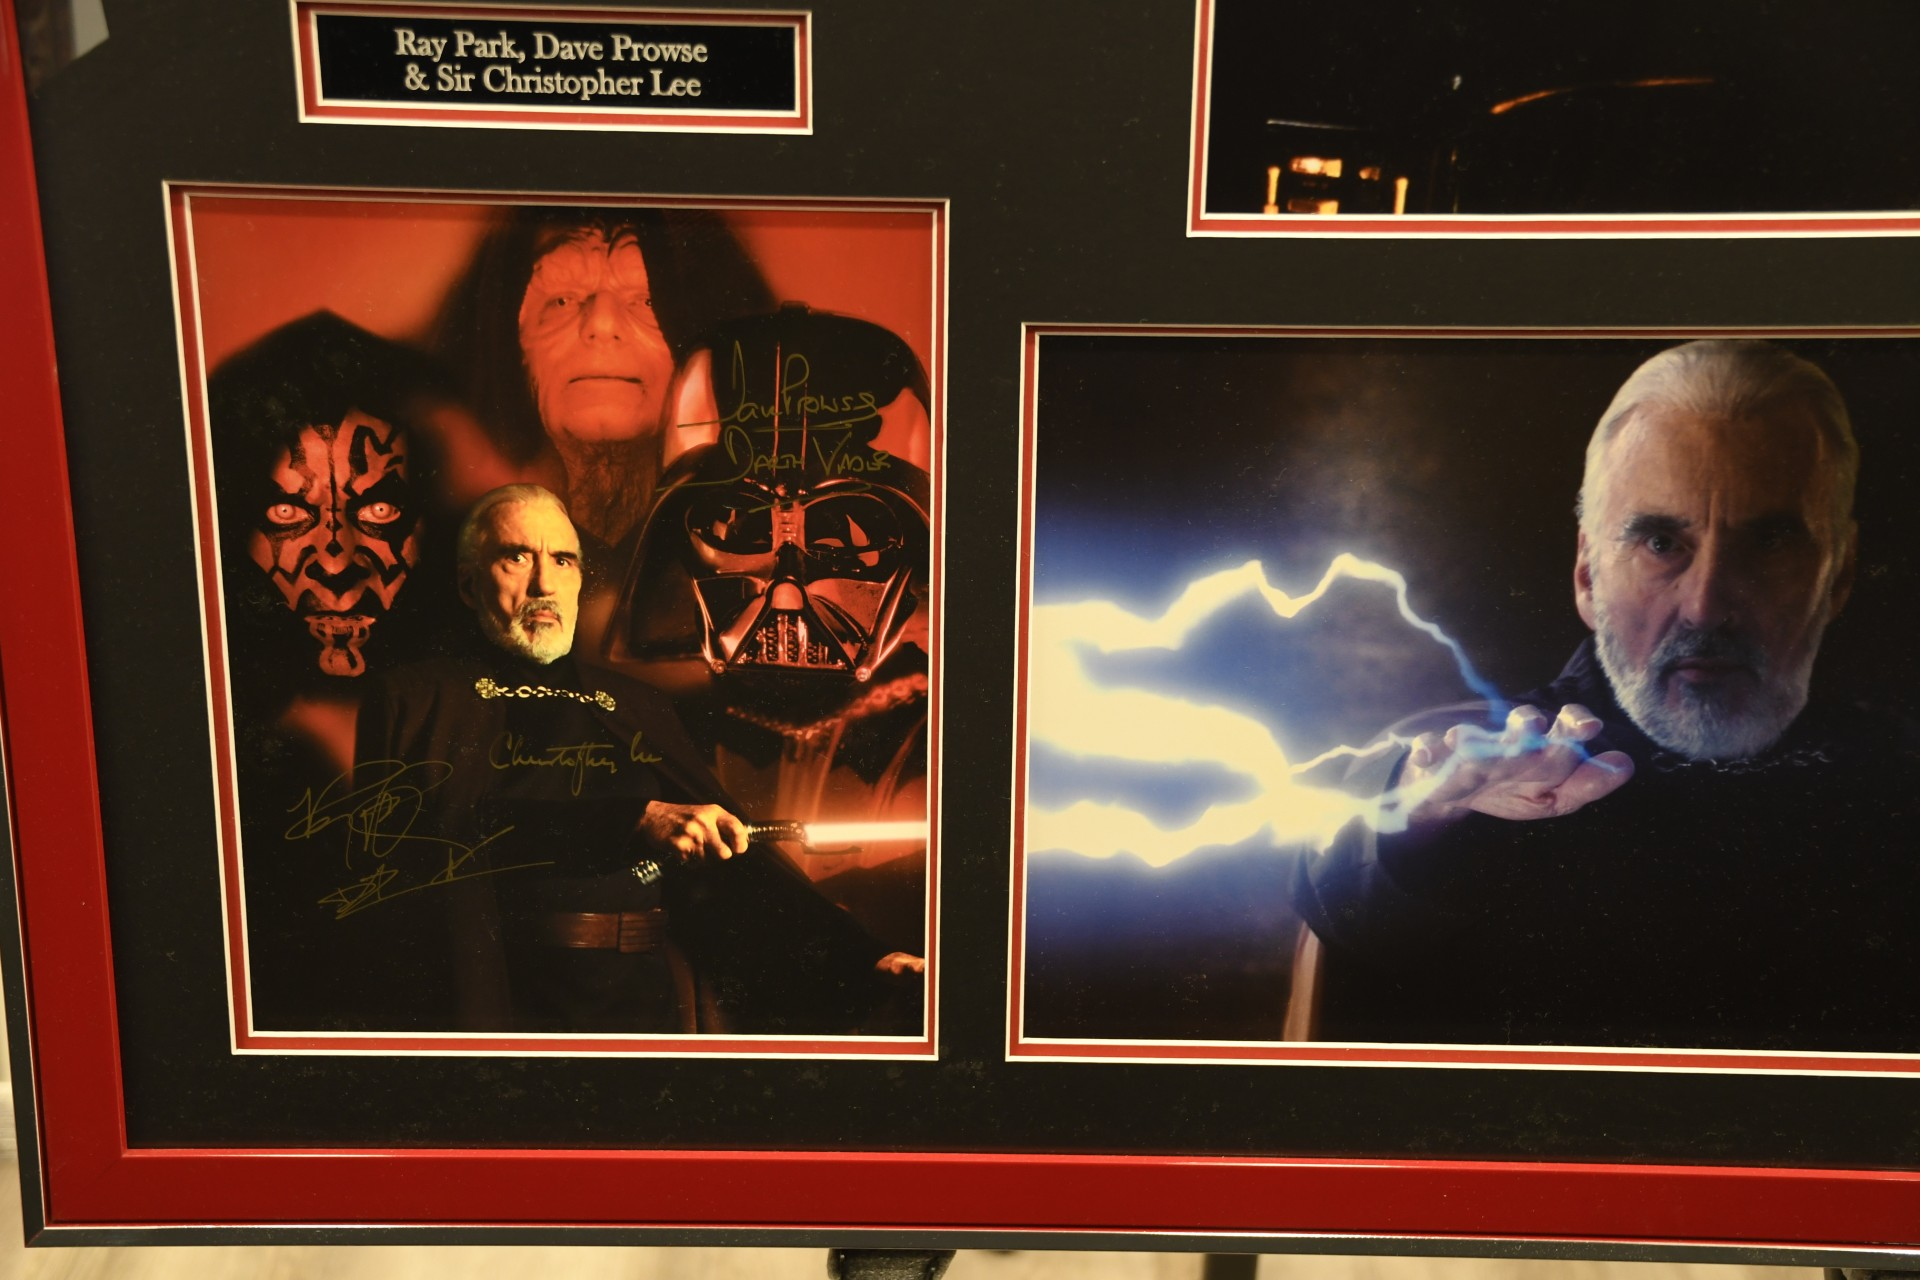 SIGNED STAR WARS PHOTOGRAPH